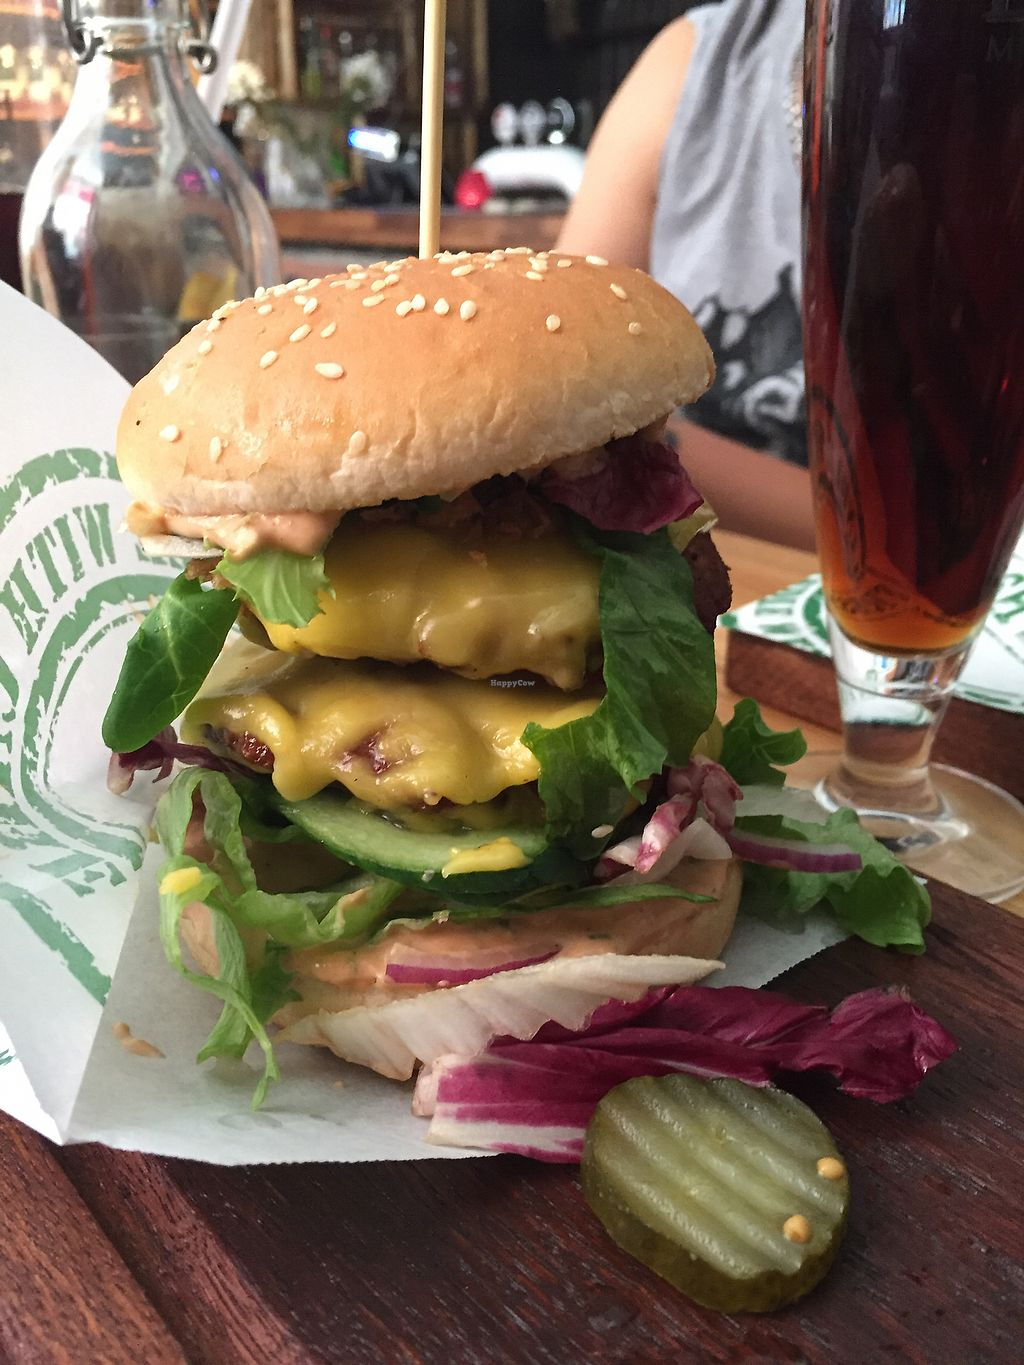 """Photo of Göteburgare Vegan  by <a href=""""/members/profile/Emmarooos"""">Emmarooos</a> <br/>Anna-Karin <br/> August 7, 2017  - <a href='/contact/abuse/image/95219/290047'>Report</a>"""